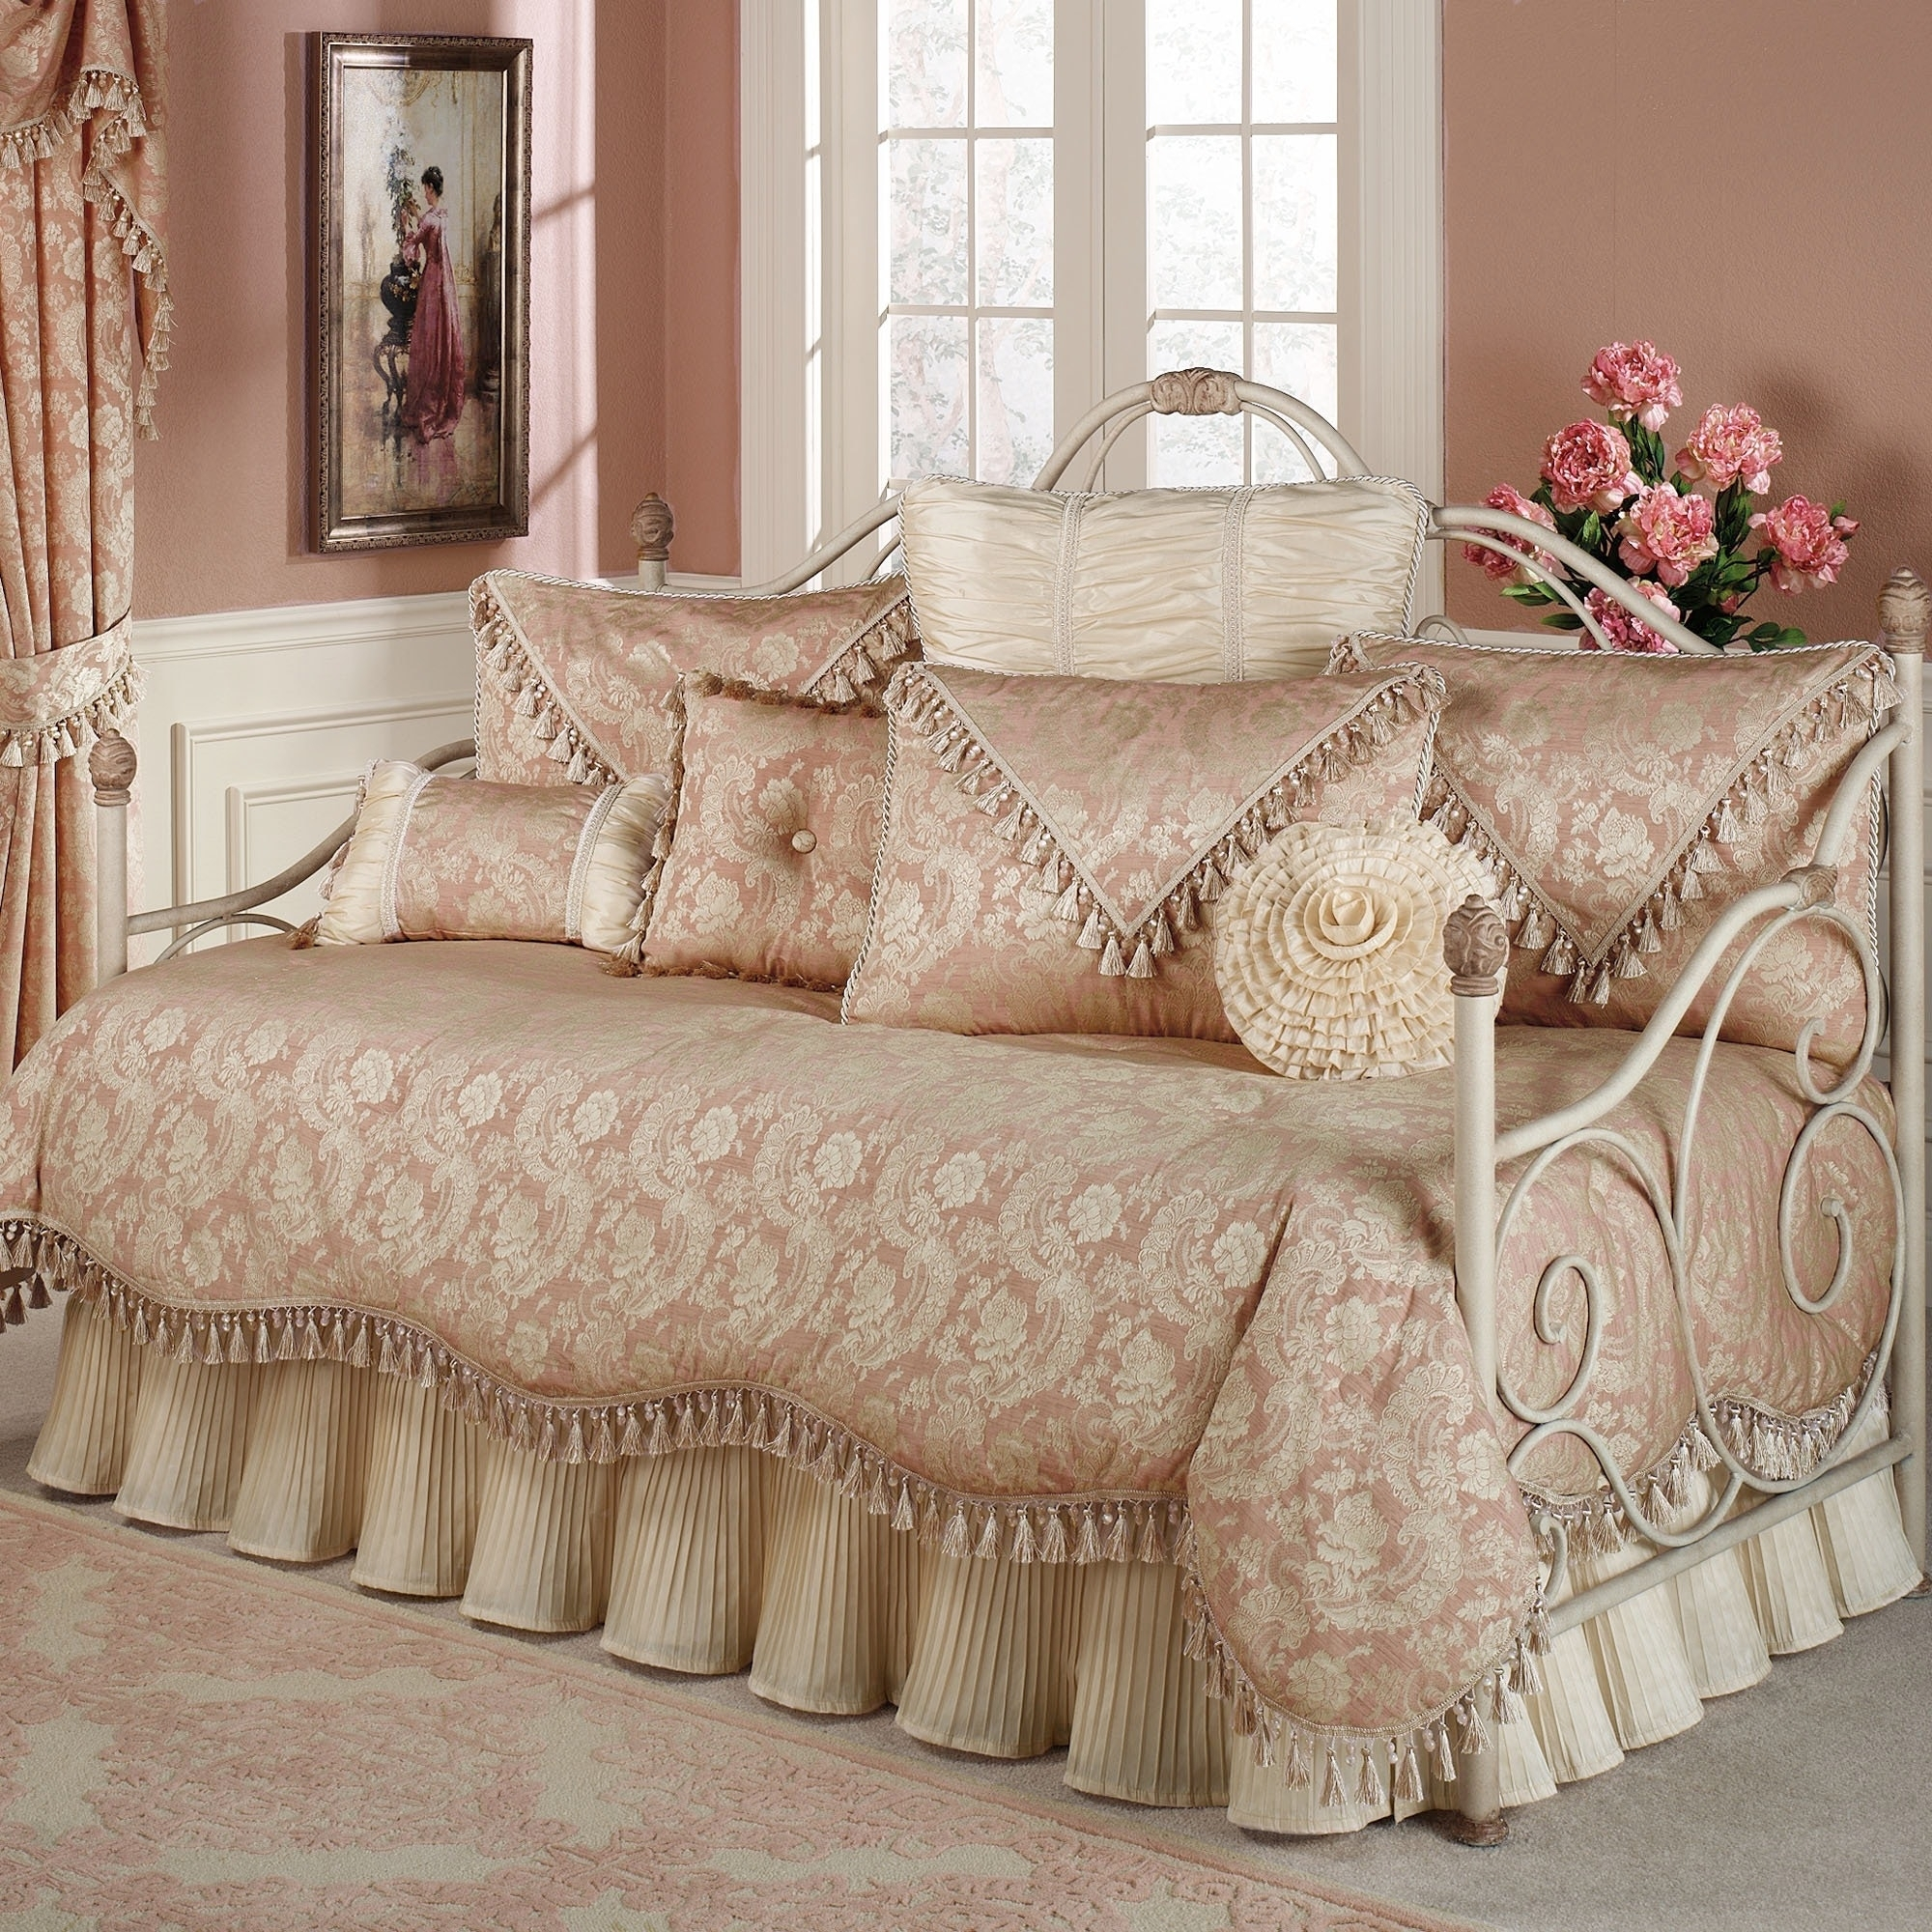 Daybed Bedding Sets Ideas On Foter